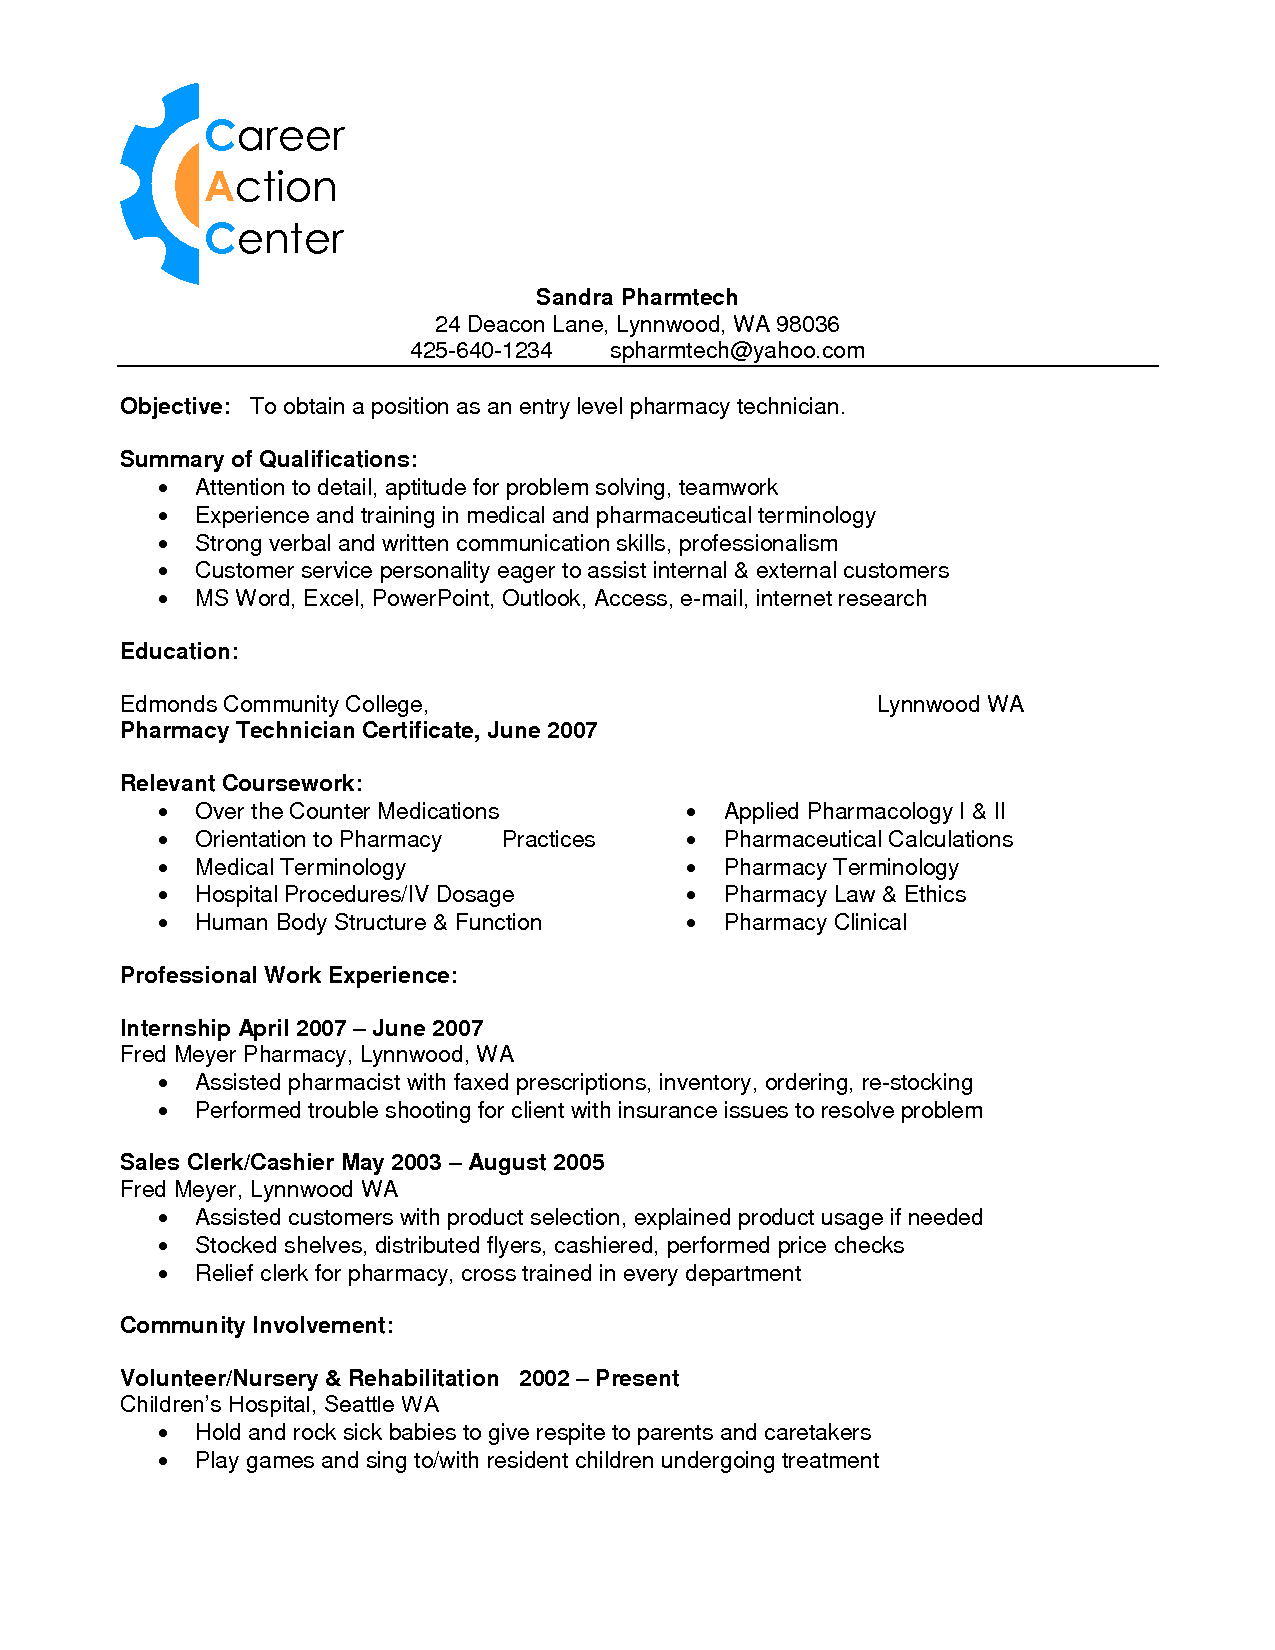 Pct Resume Sample Resume For Bank Teller At Entry Level  Httpwww